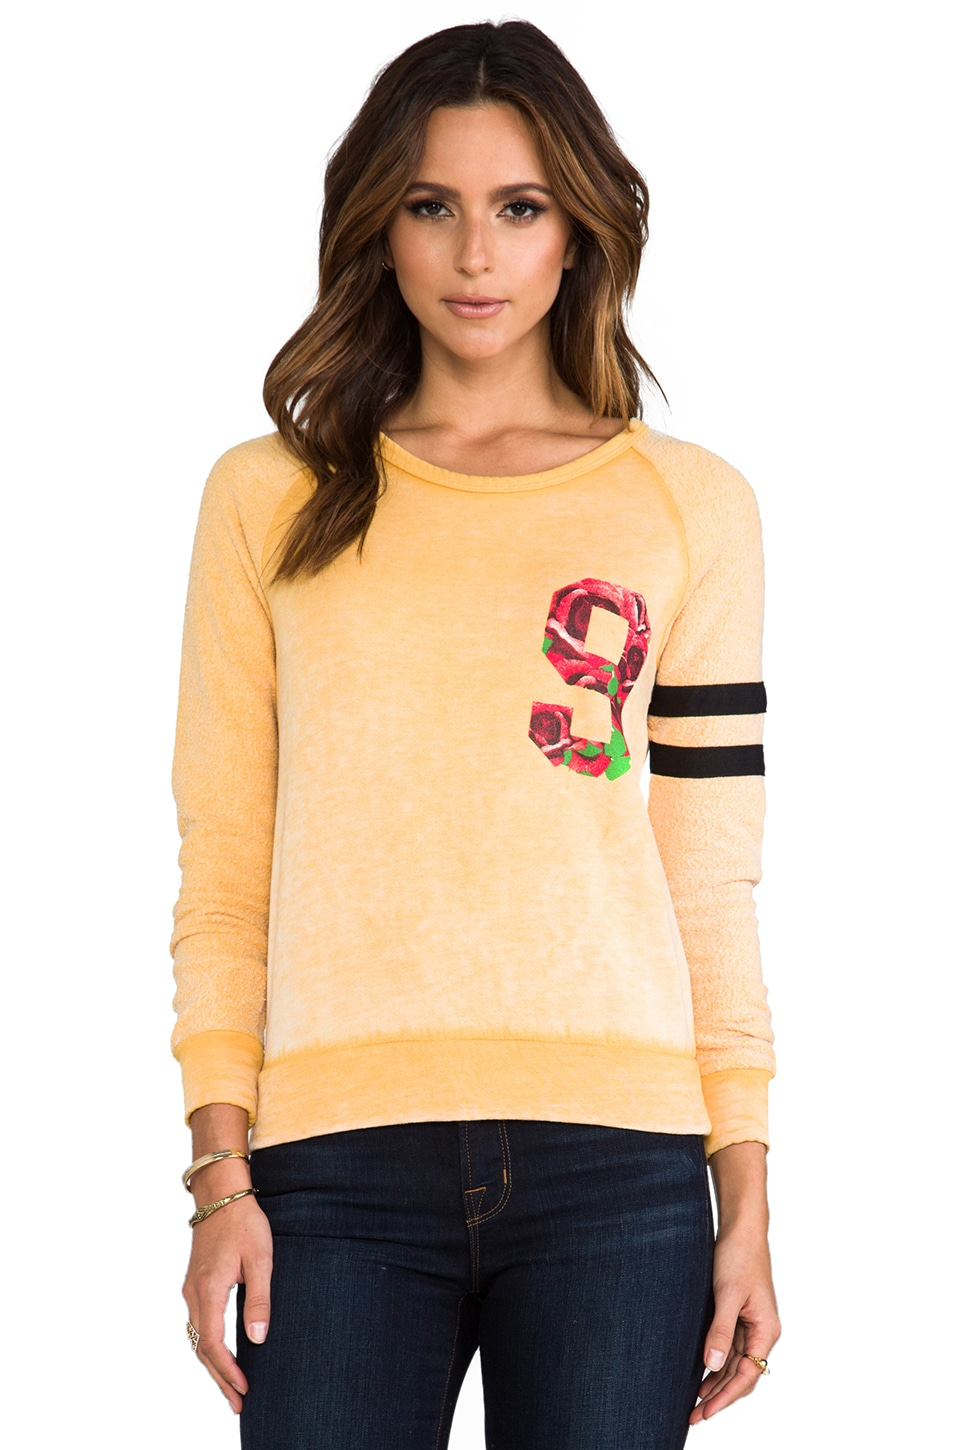 Rebel Yell Viva Rose Little Sis Lounger in Mustard